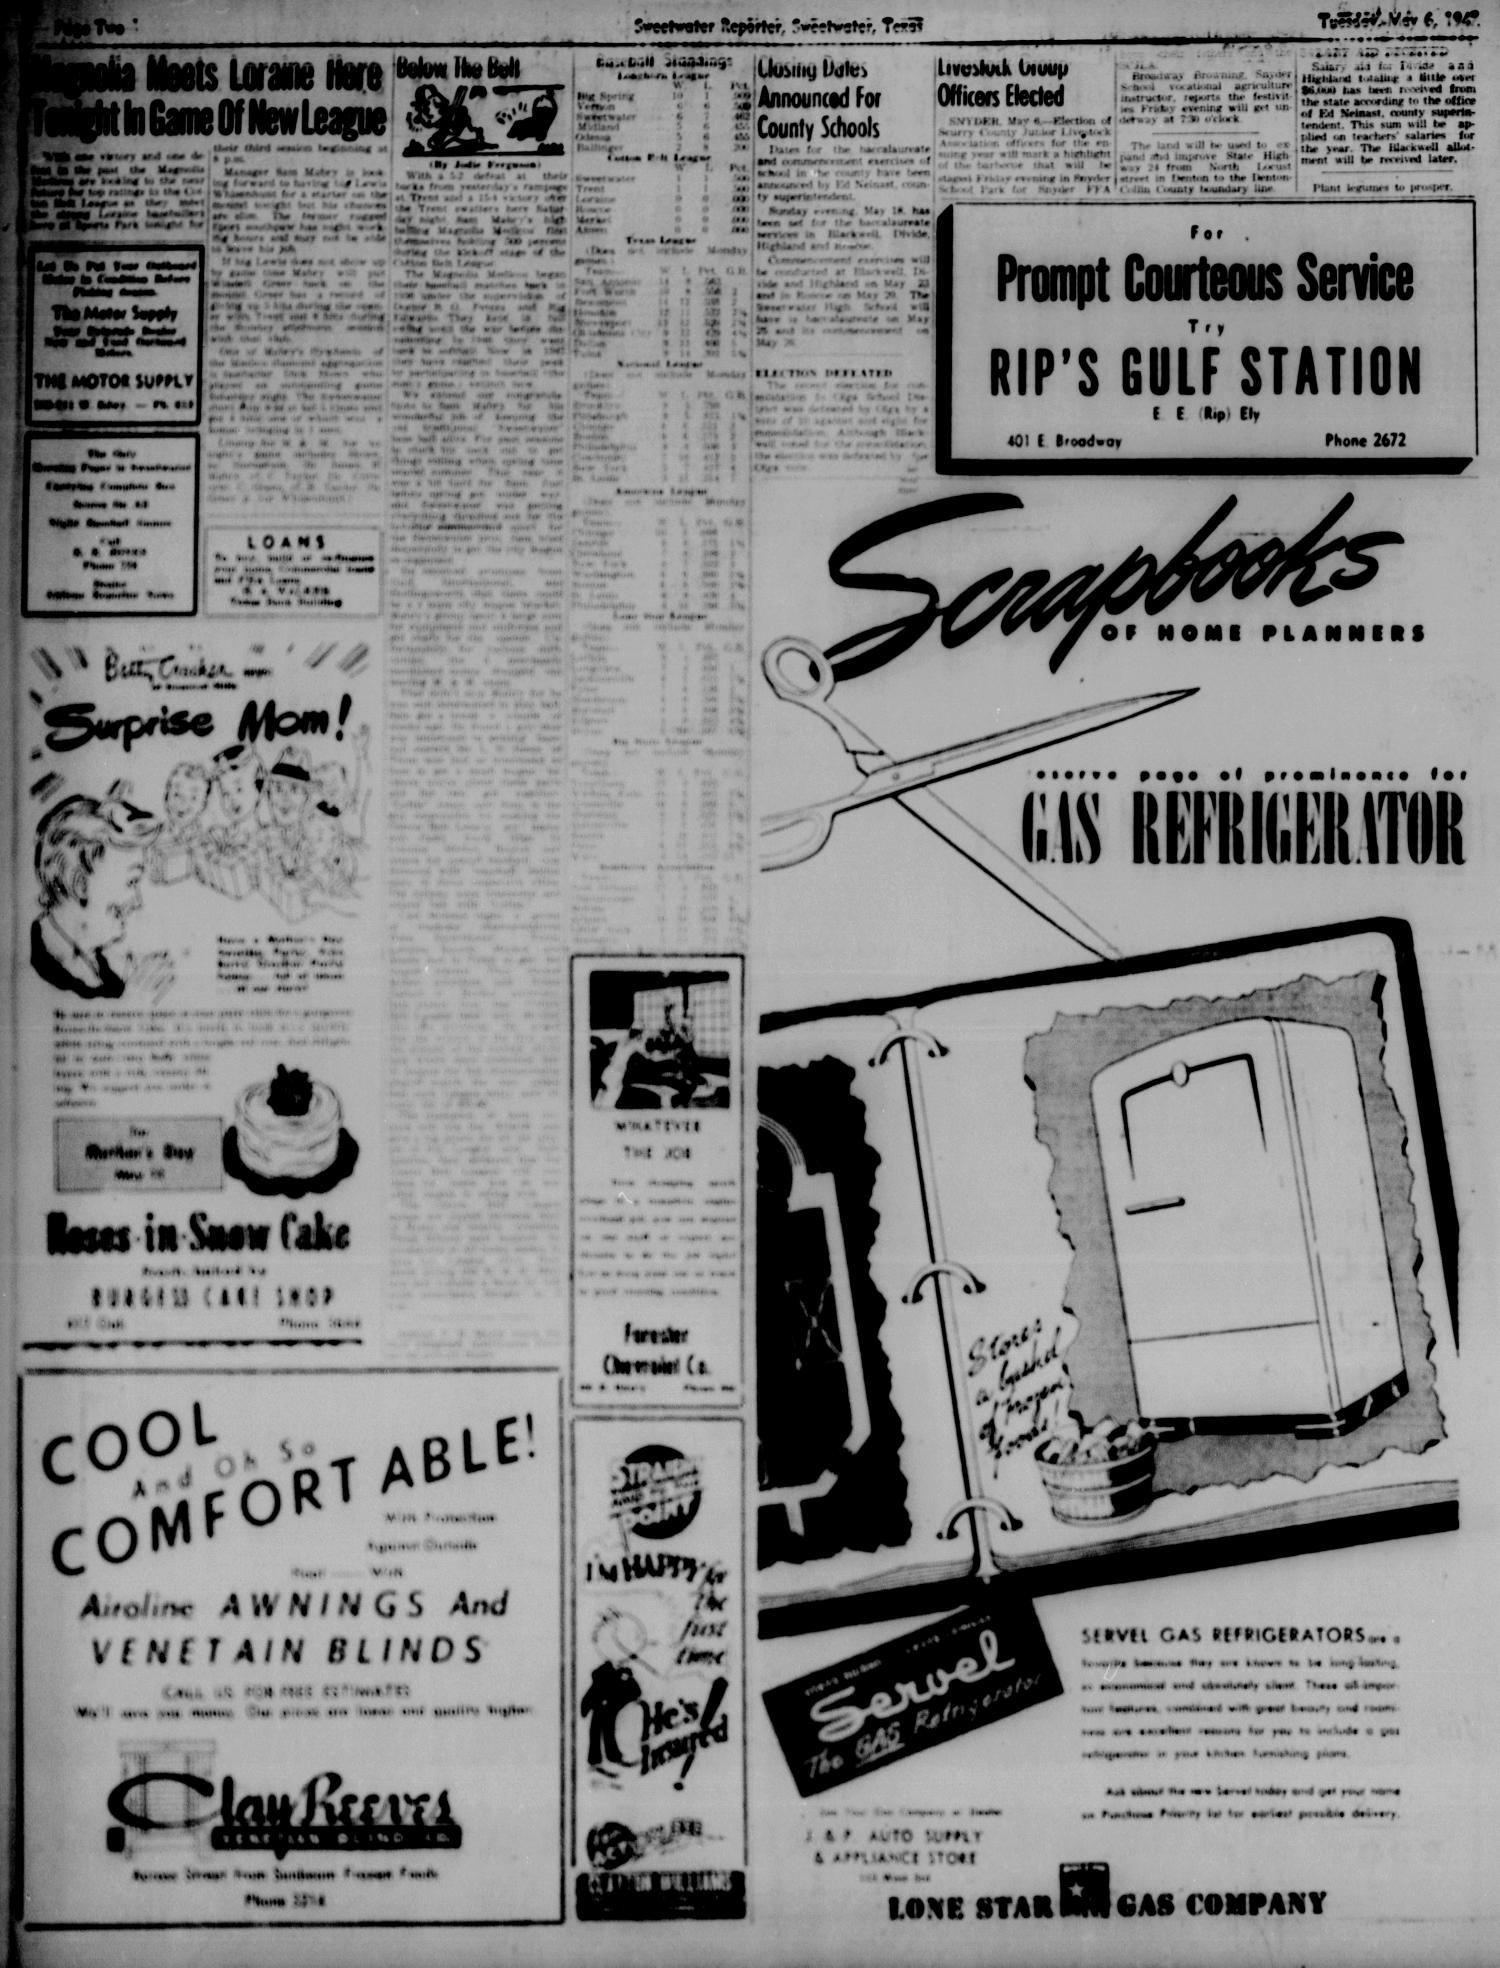 Sweetwater Reporter (Sweetwater, Tex.), Vol. 50, No. 108, Ed. 1 Tuesday, May 6, 1947                                                                                                      [Sequence #]: 2 of 6